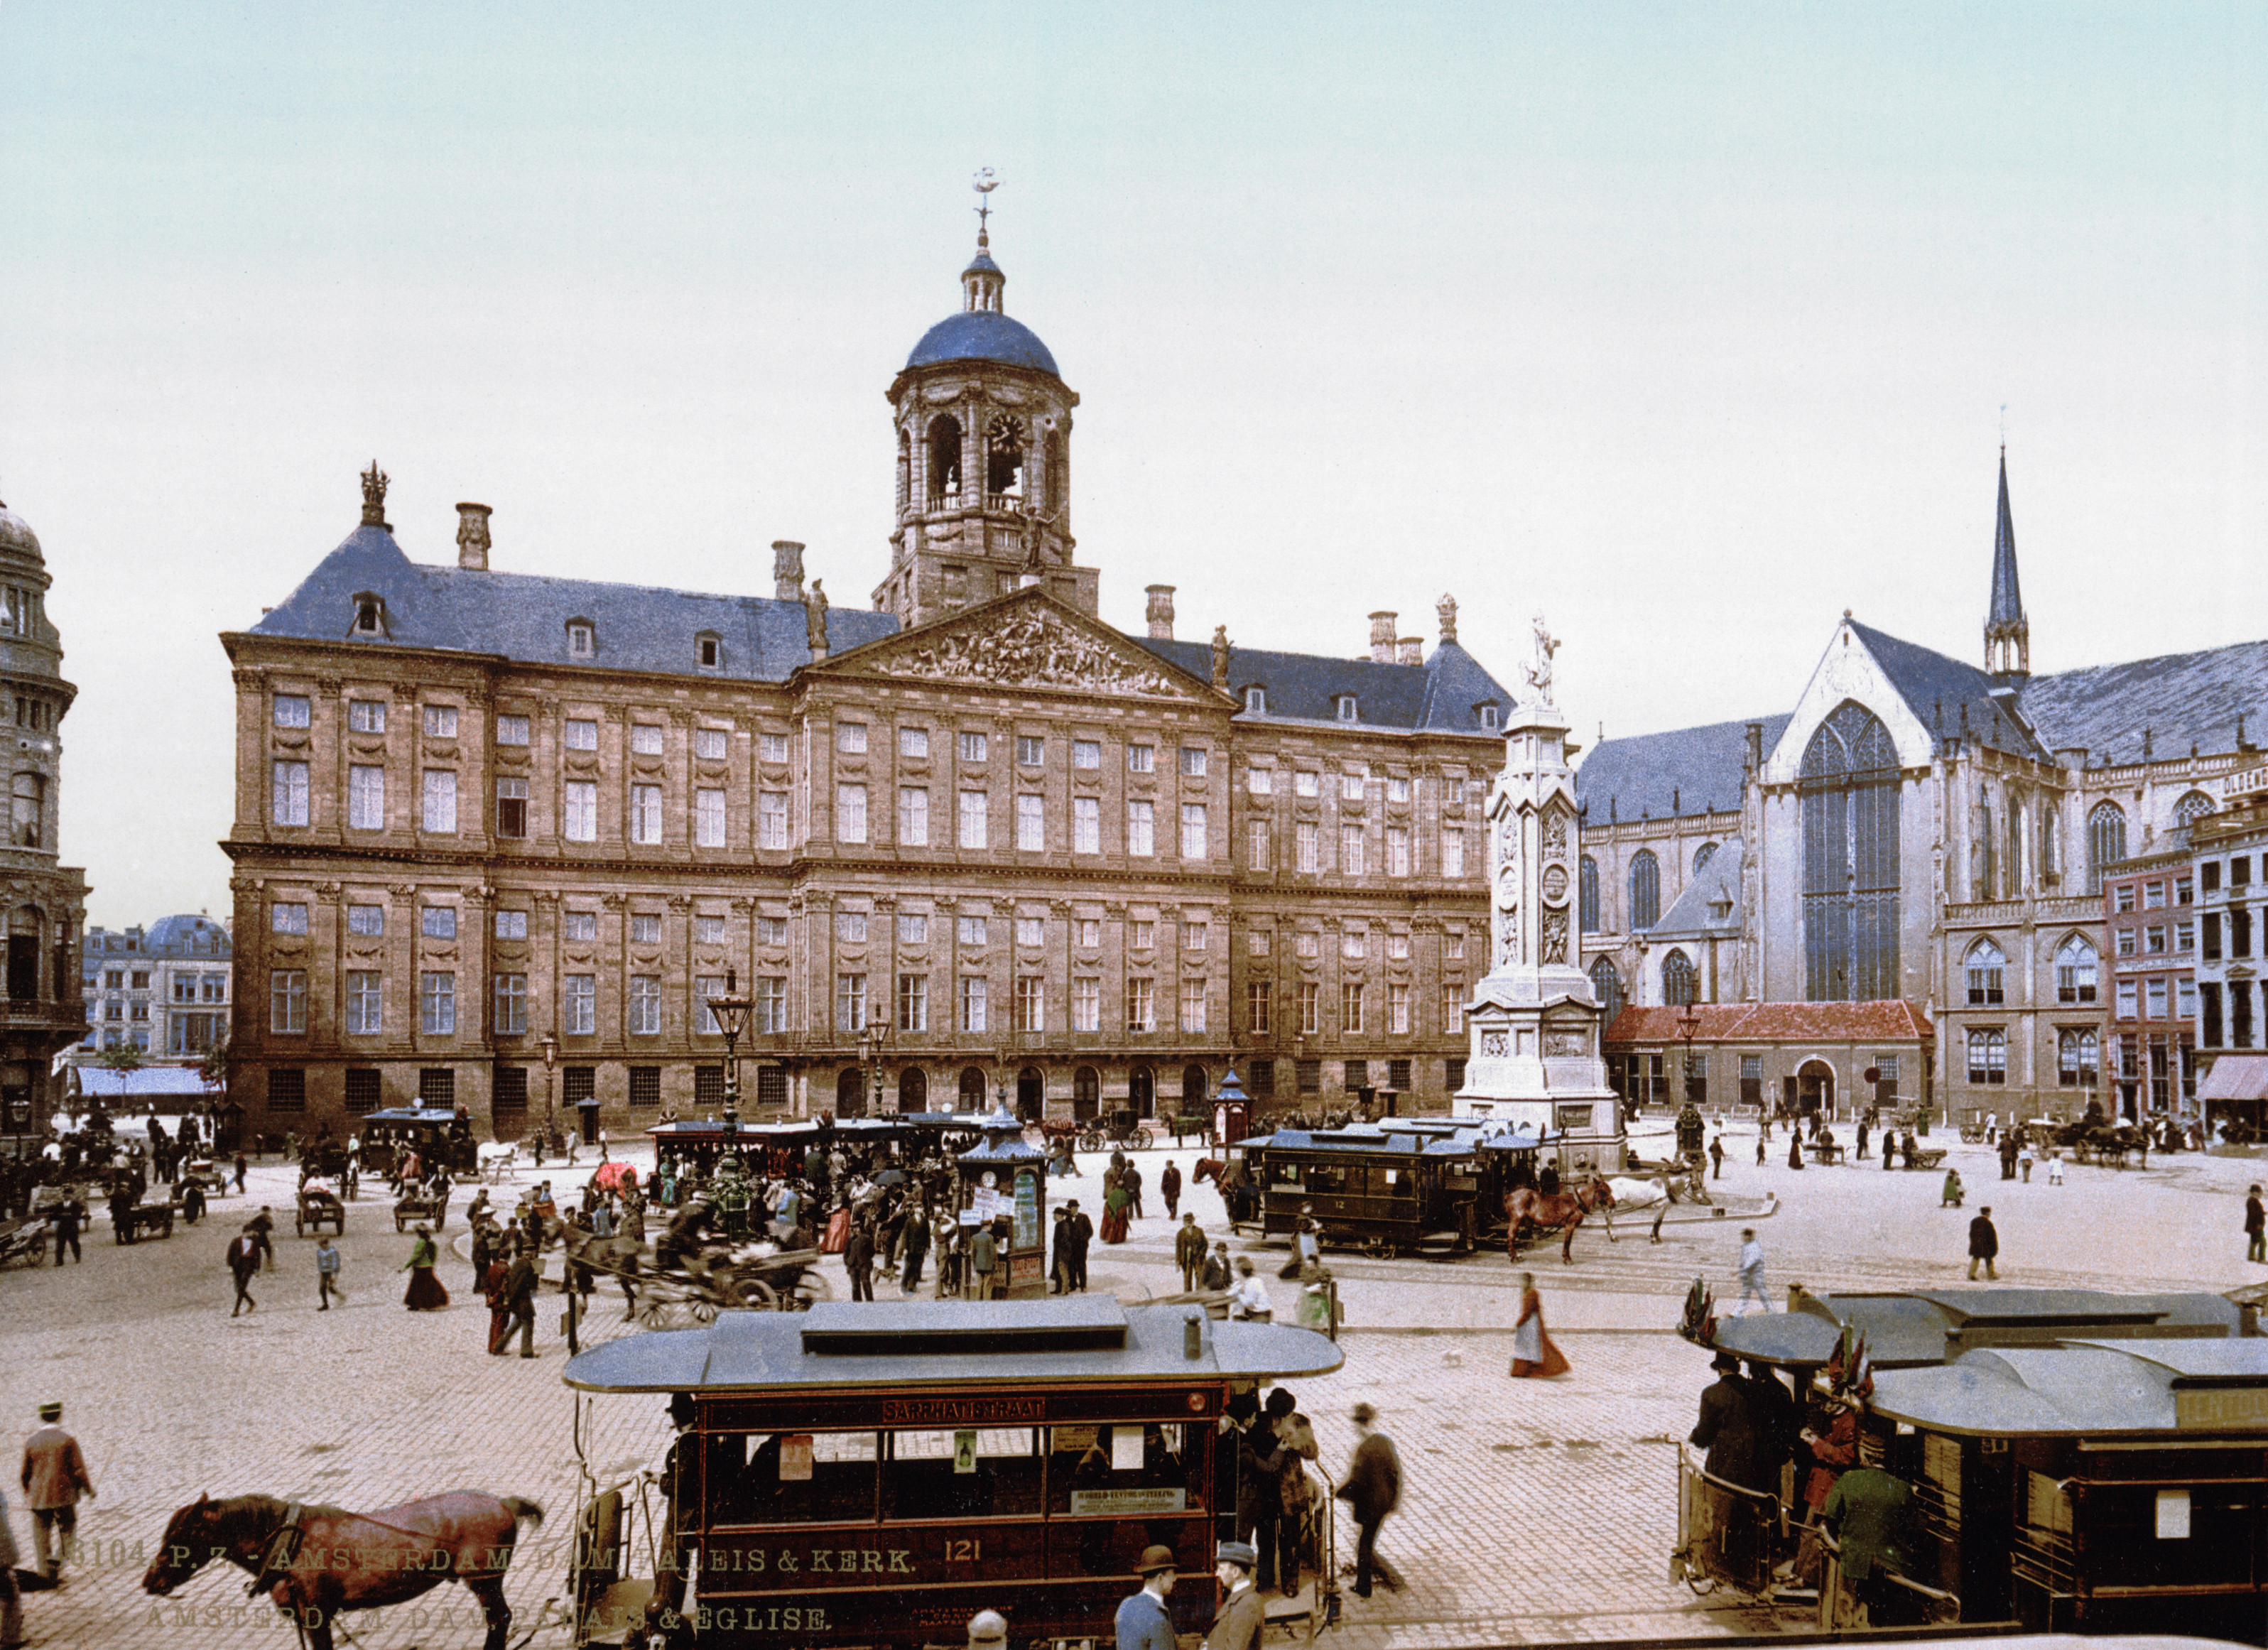 Horse-drawn streetcars at the Paleis op de Dam, Amsterdam, Netherlands between 1895 and 1900.